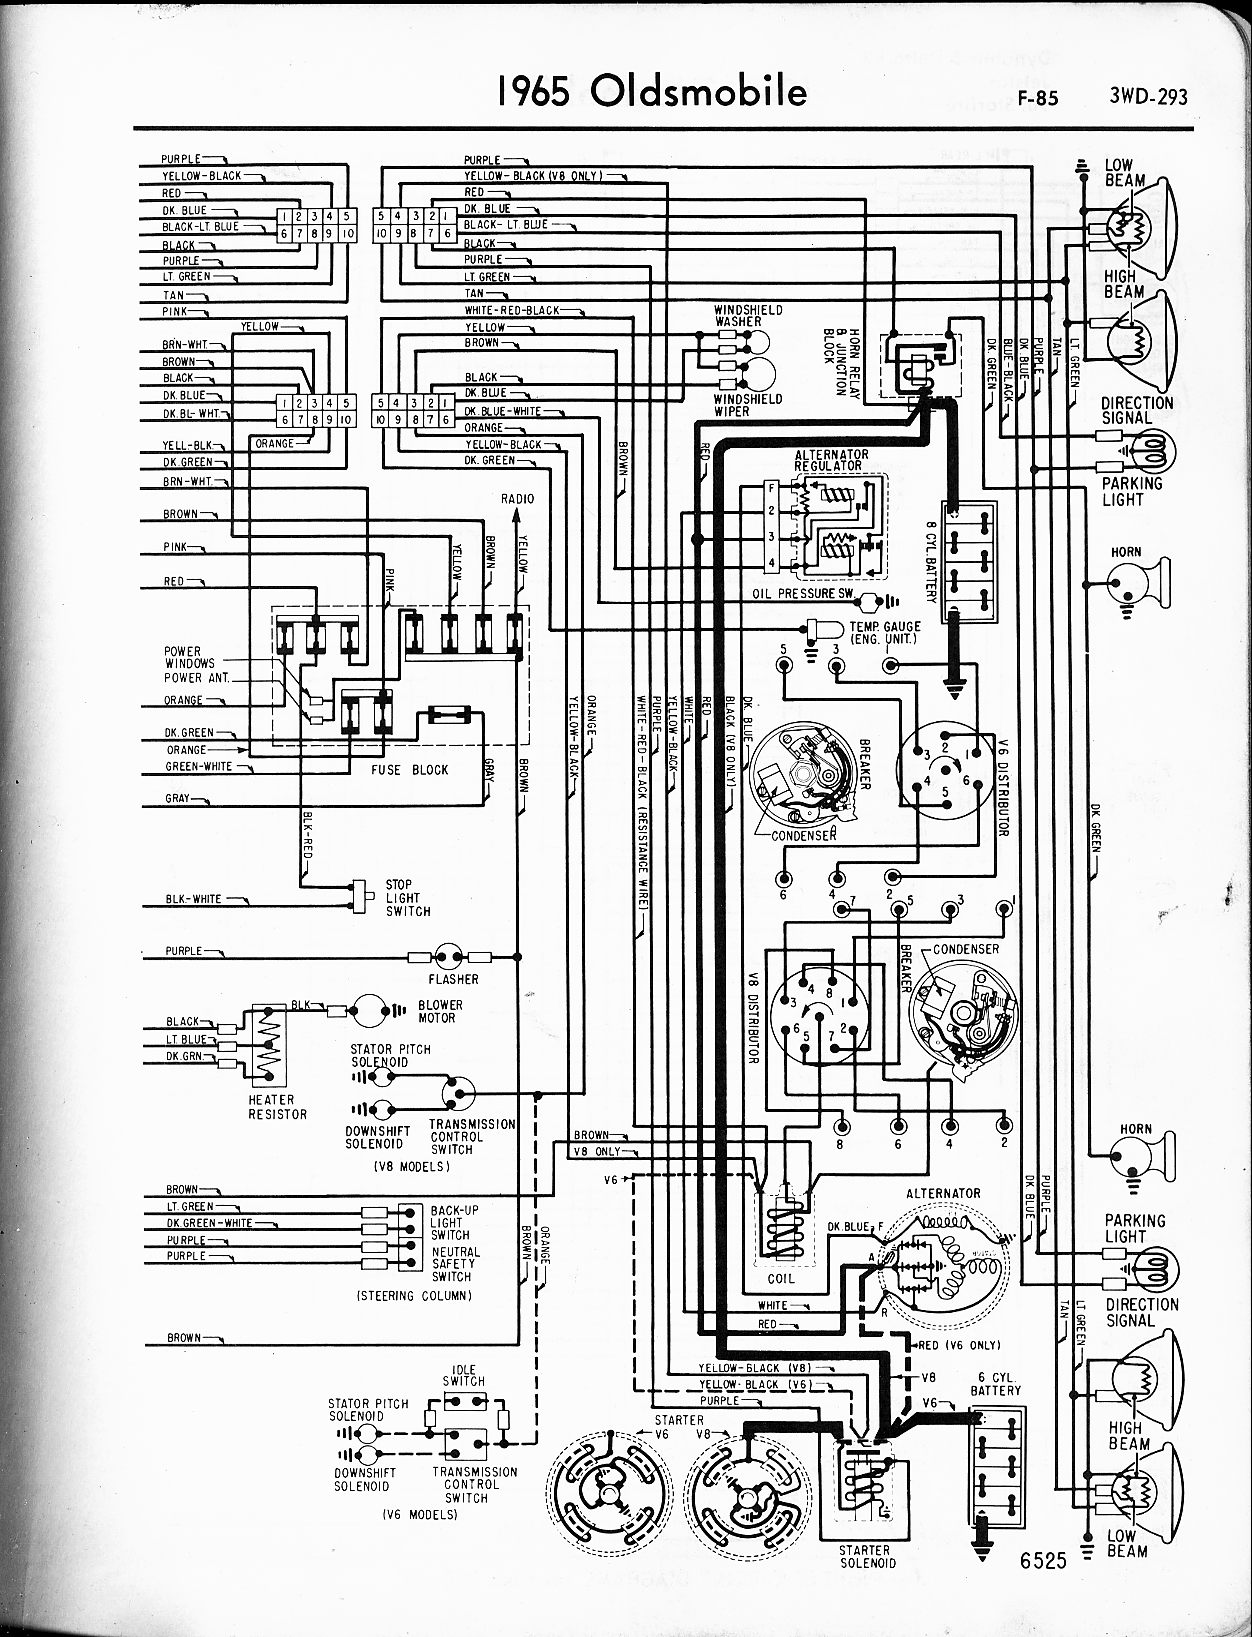 Oldsmobile vin location wiring diagram and fuse box diagram images - 1965 F 85 Right Page